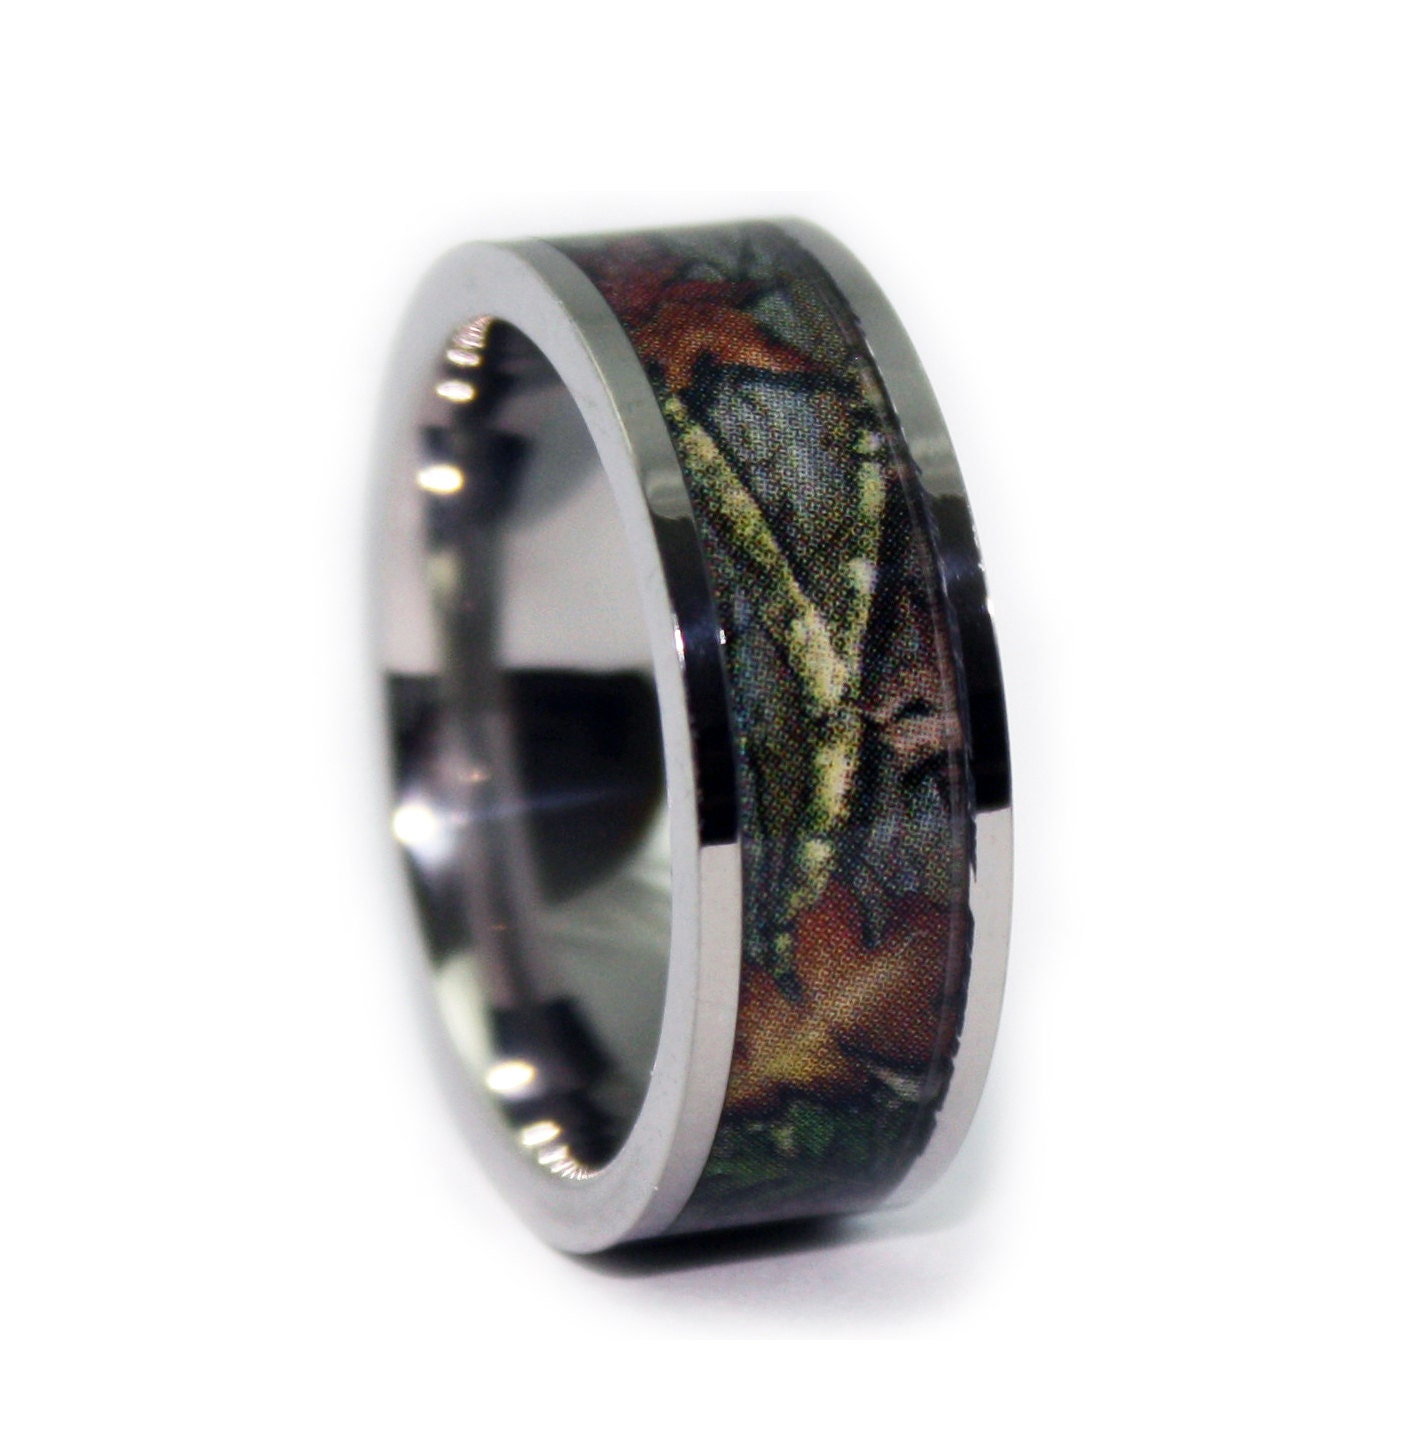 camo jewelry bands diamond size products rings wedding black hers multi forest set engagement green plating couples her simulated square his ring s